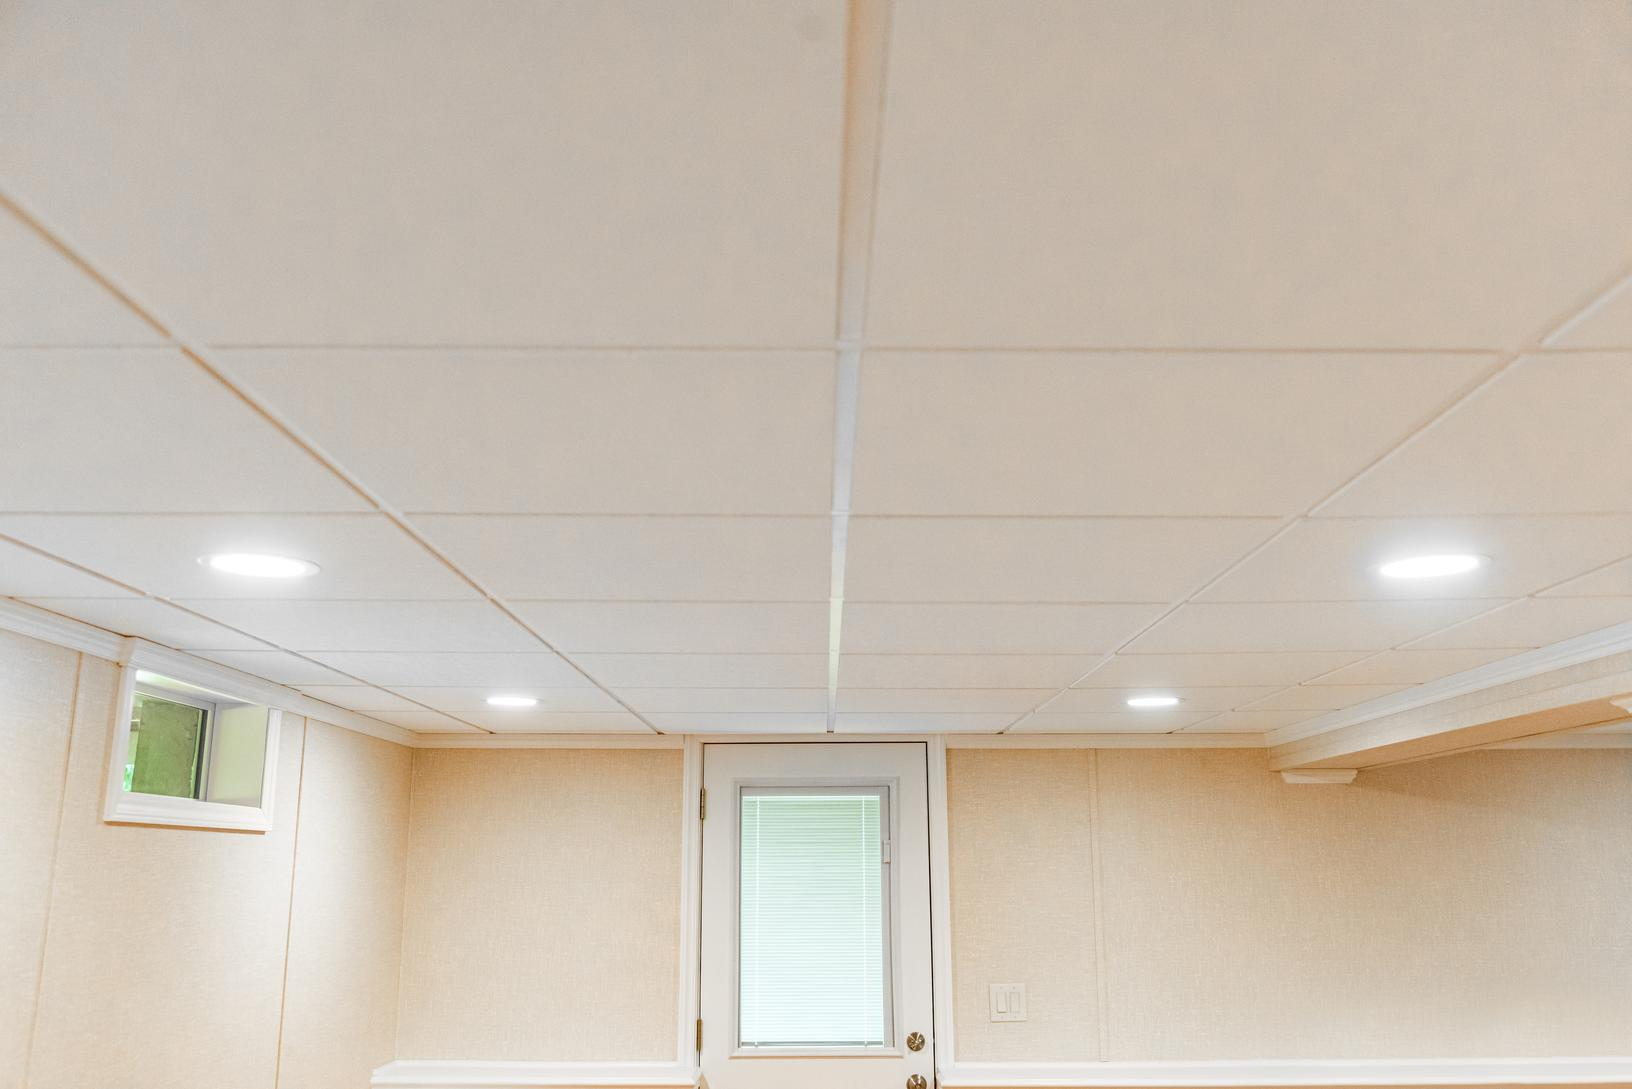 Basement Ceiling Tiles for a project we worked on in White Plains, Connecticut, New York and Massachusetts